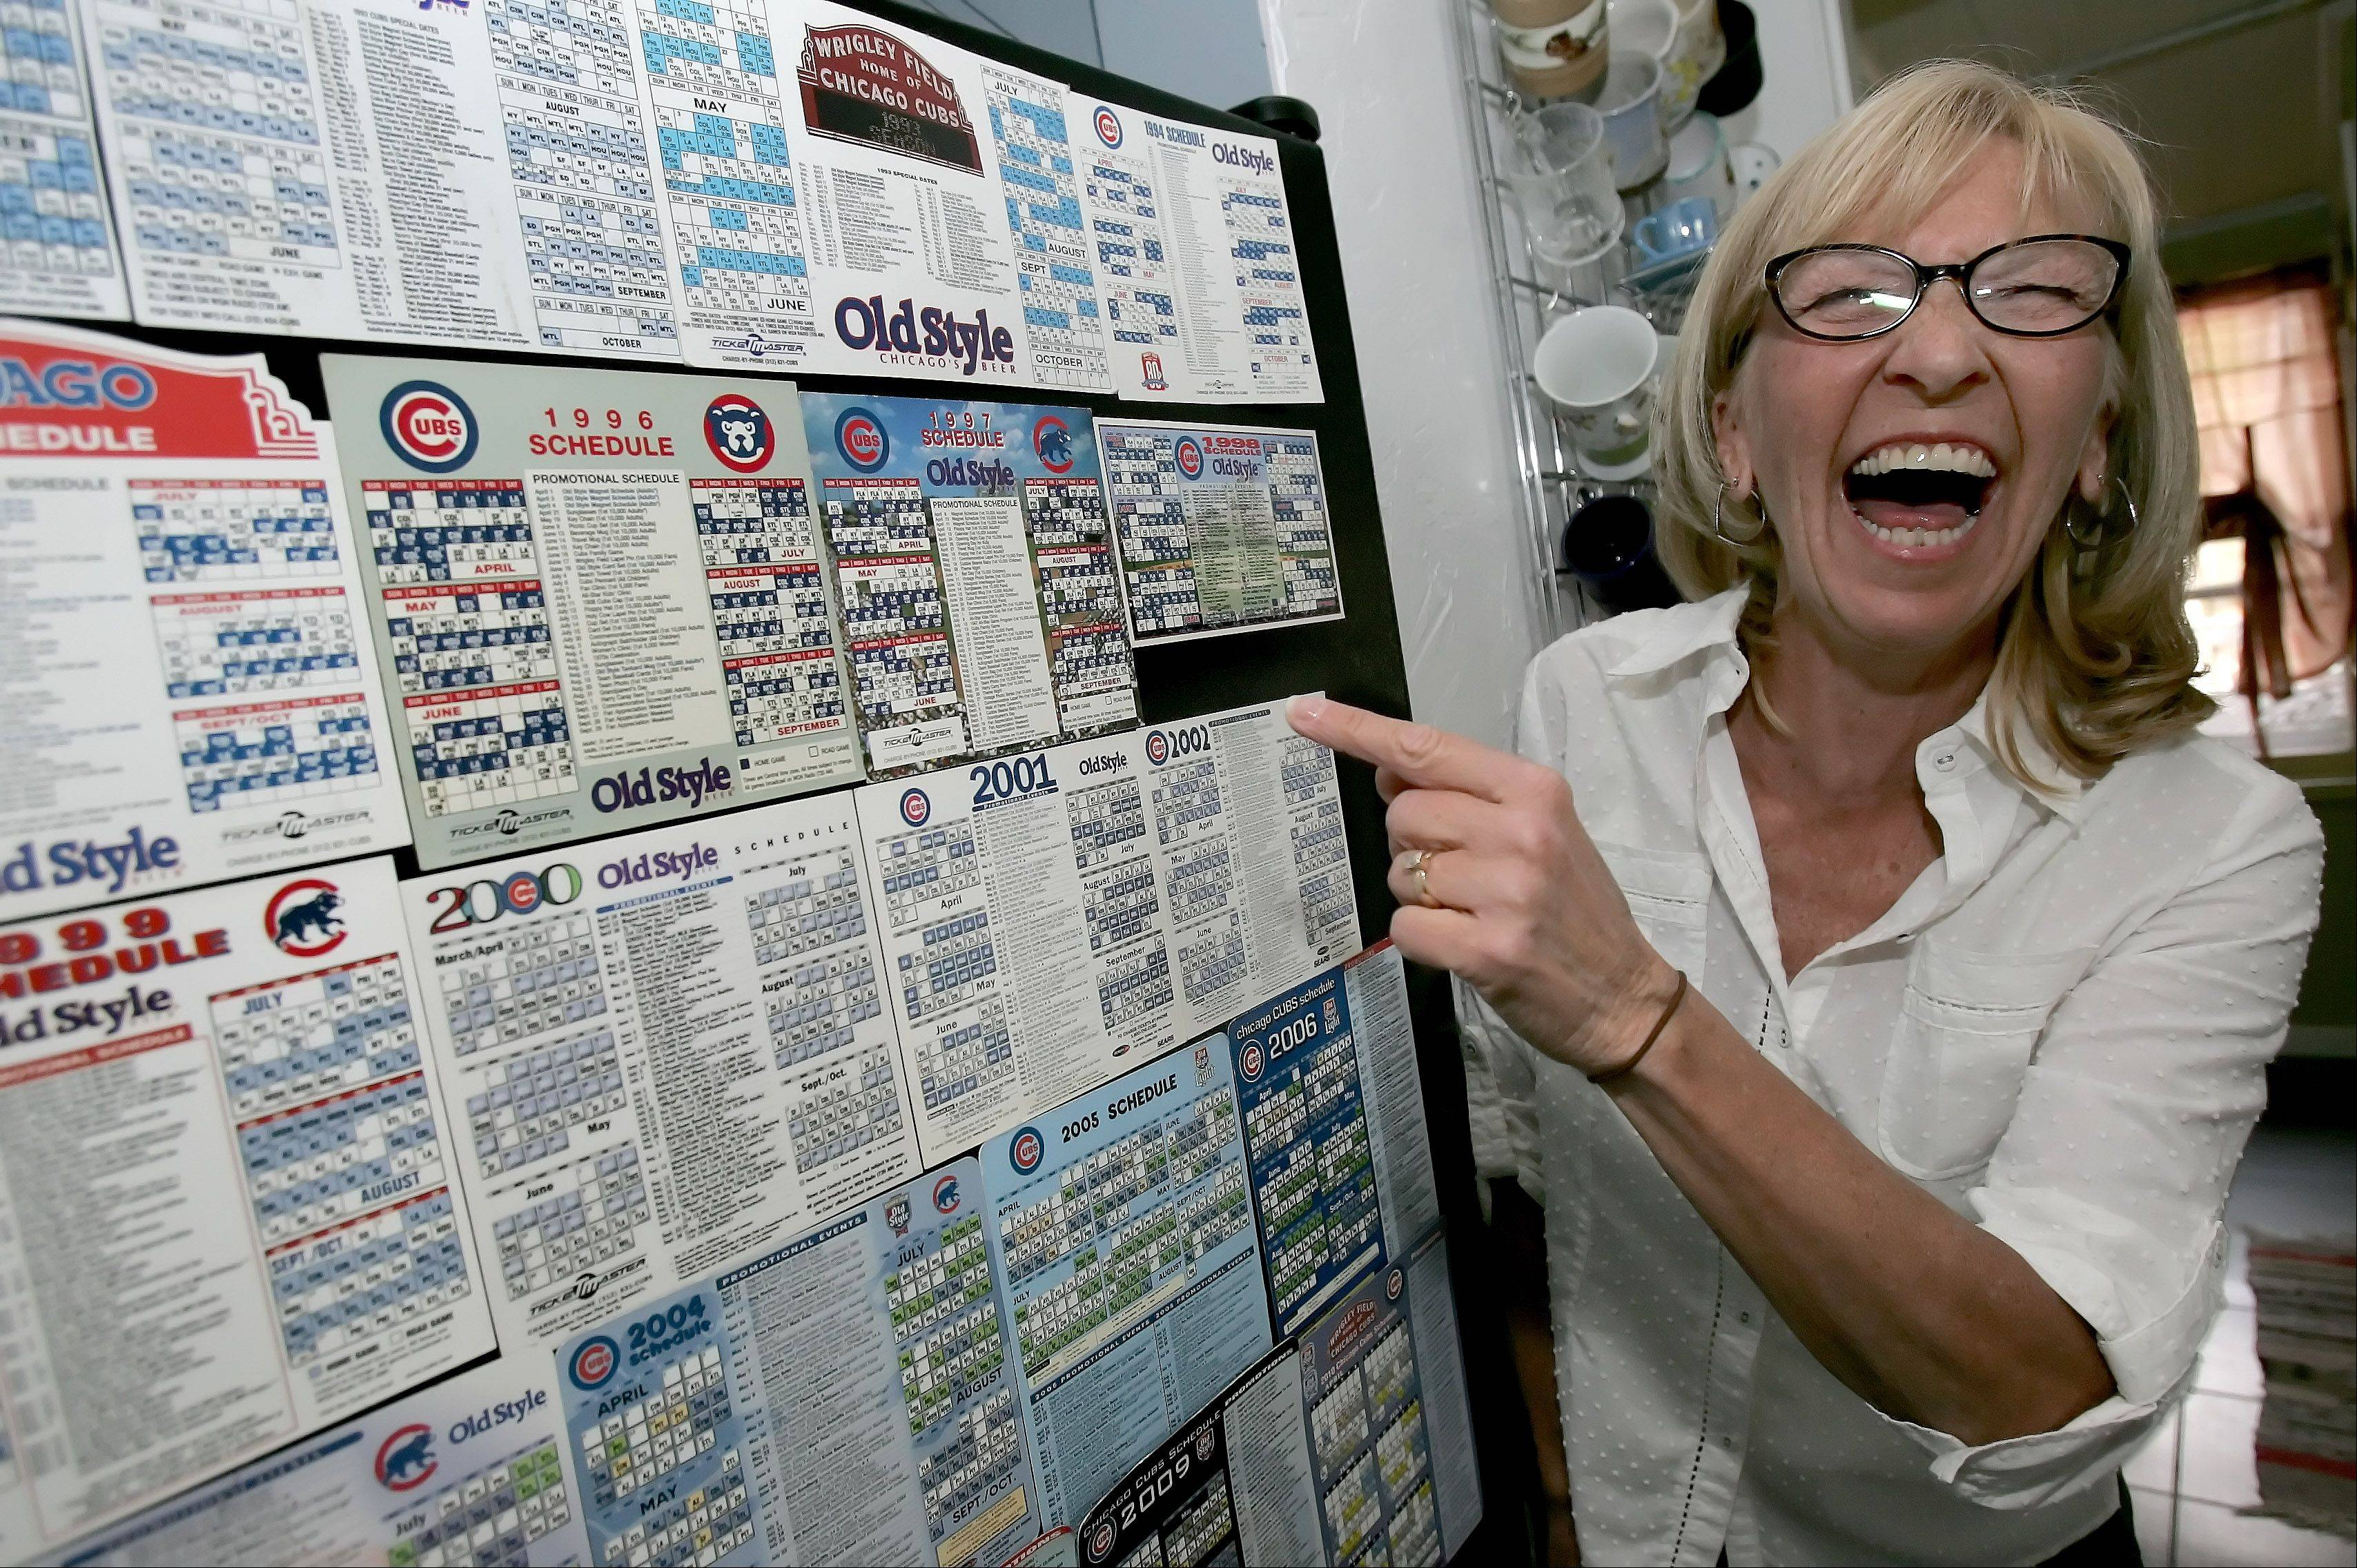 Debra Hruby of Wheaton shows off her collection of magnets received at Chicago Cubs home openers since 1990. For the past 28 years the Hruby family has been going to the Cubs home opener and sitting in the bleachers.